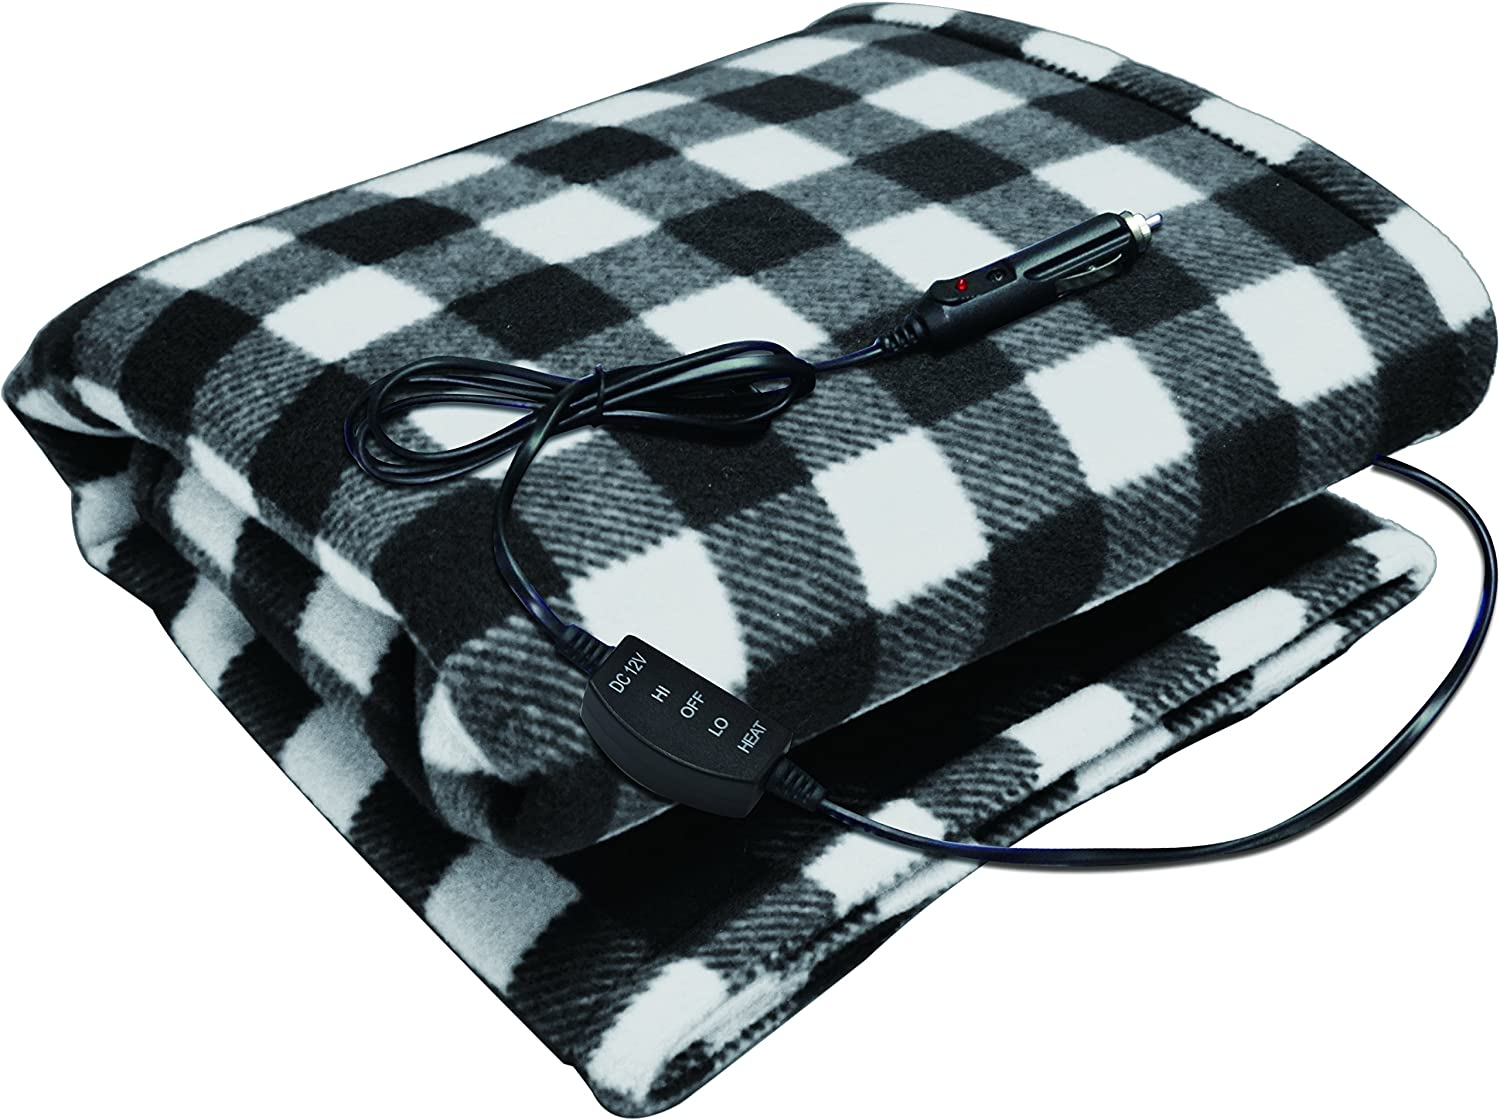 Sojoy 12V Heated Travel Electric Blanket for Car Truck Boats or RV with High/Low Temp control Checkered (Black & White)